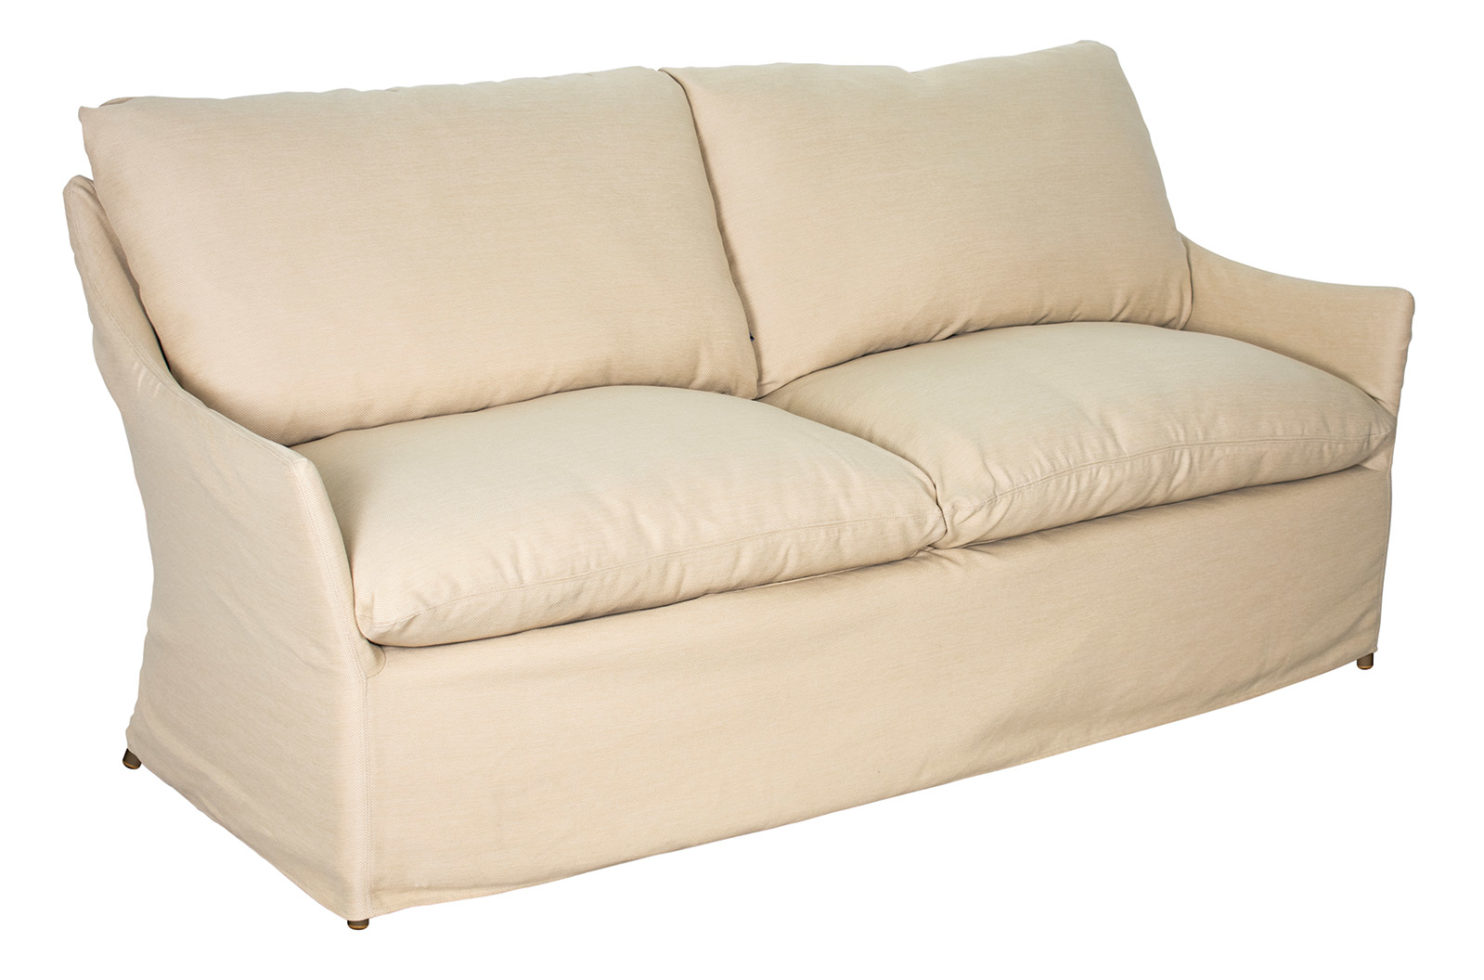 capri sofa 620FT094FC PW 1 3Q